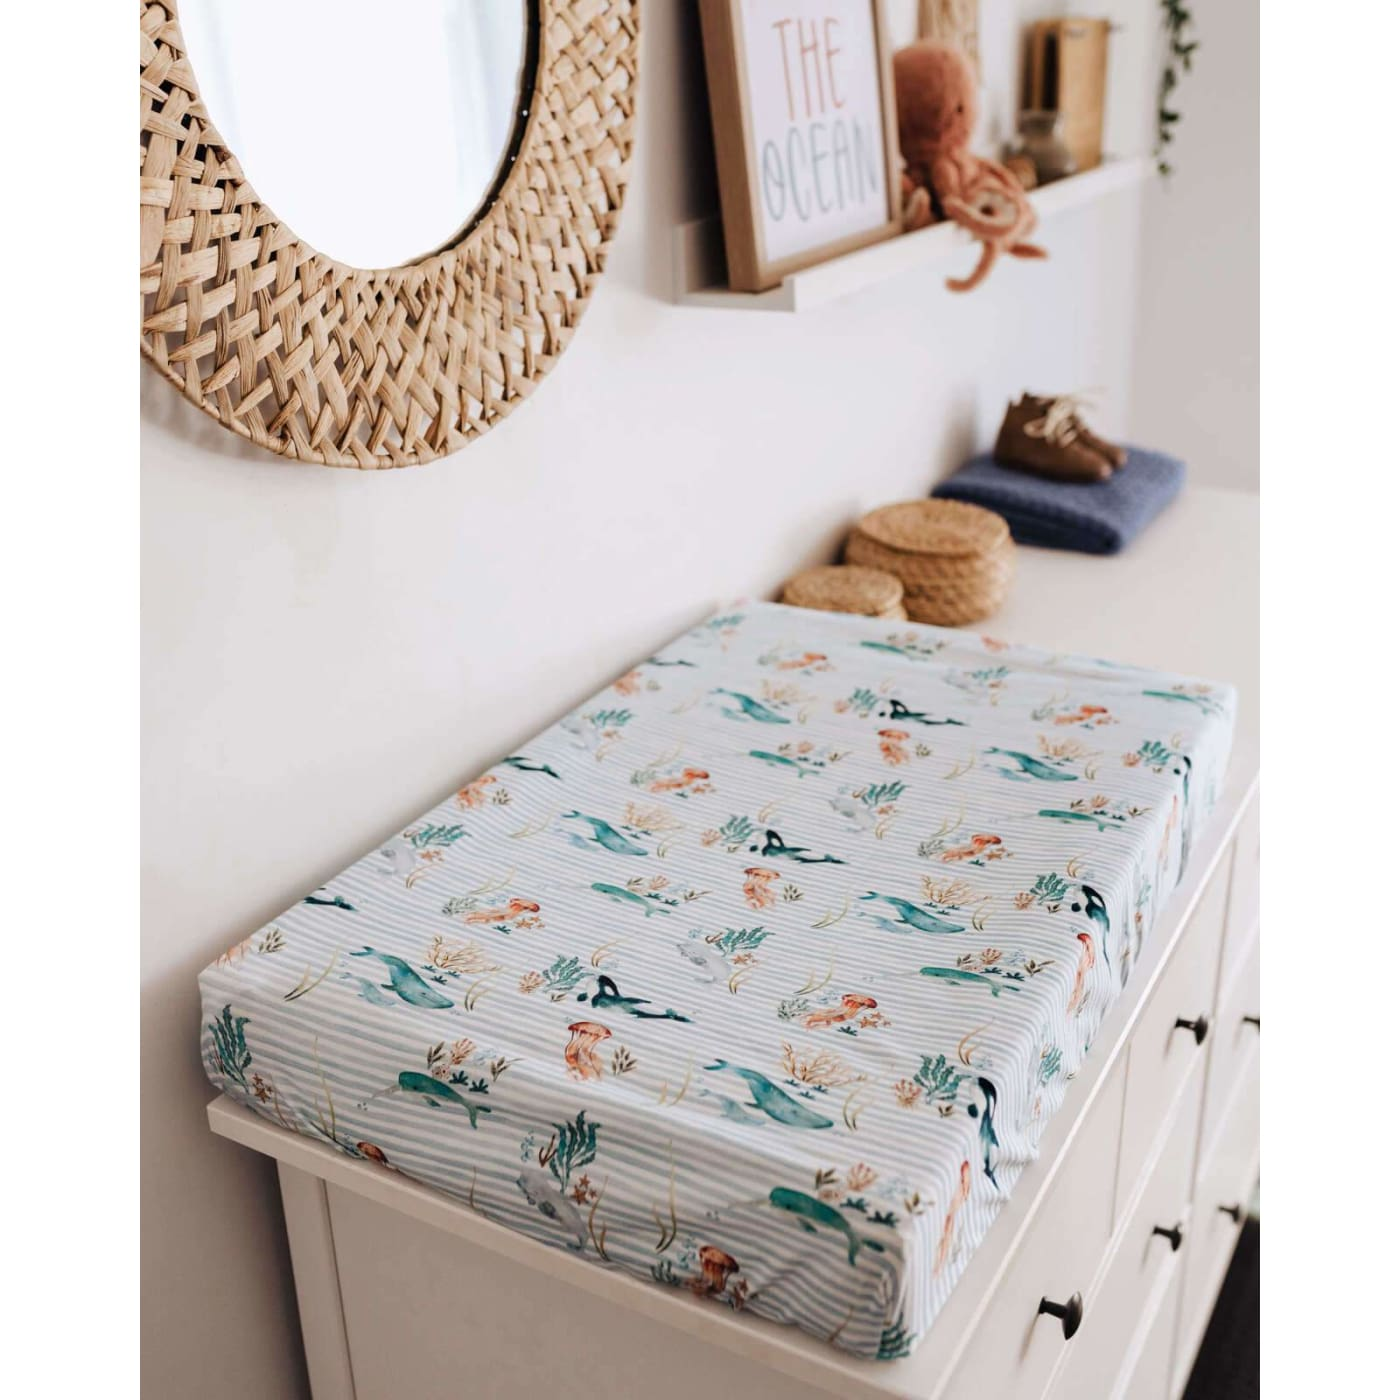 Snuggle Hunny Kids Bassinet Sheet/Cradle Sheet/Change Pad Cover - Whale - Whale - NURSERY & BEDTIME - BASS/CRADLE/COSLEEP MANCHESTER